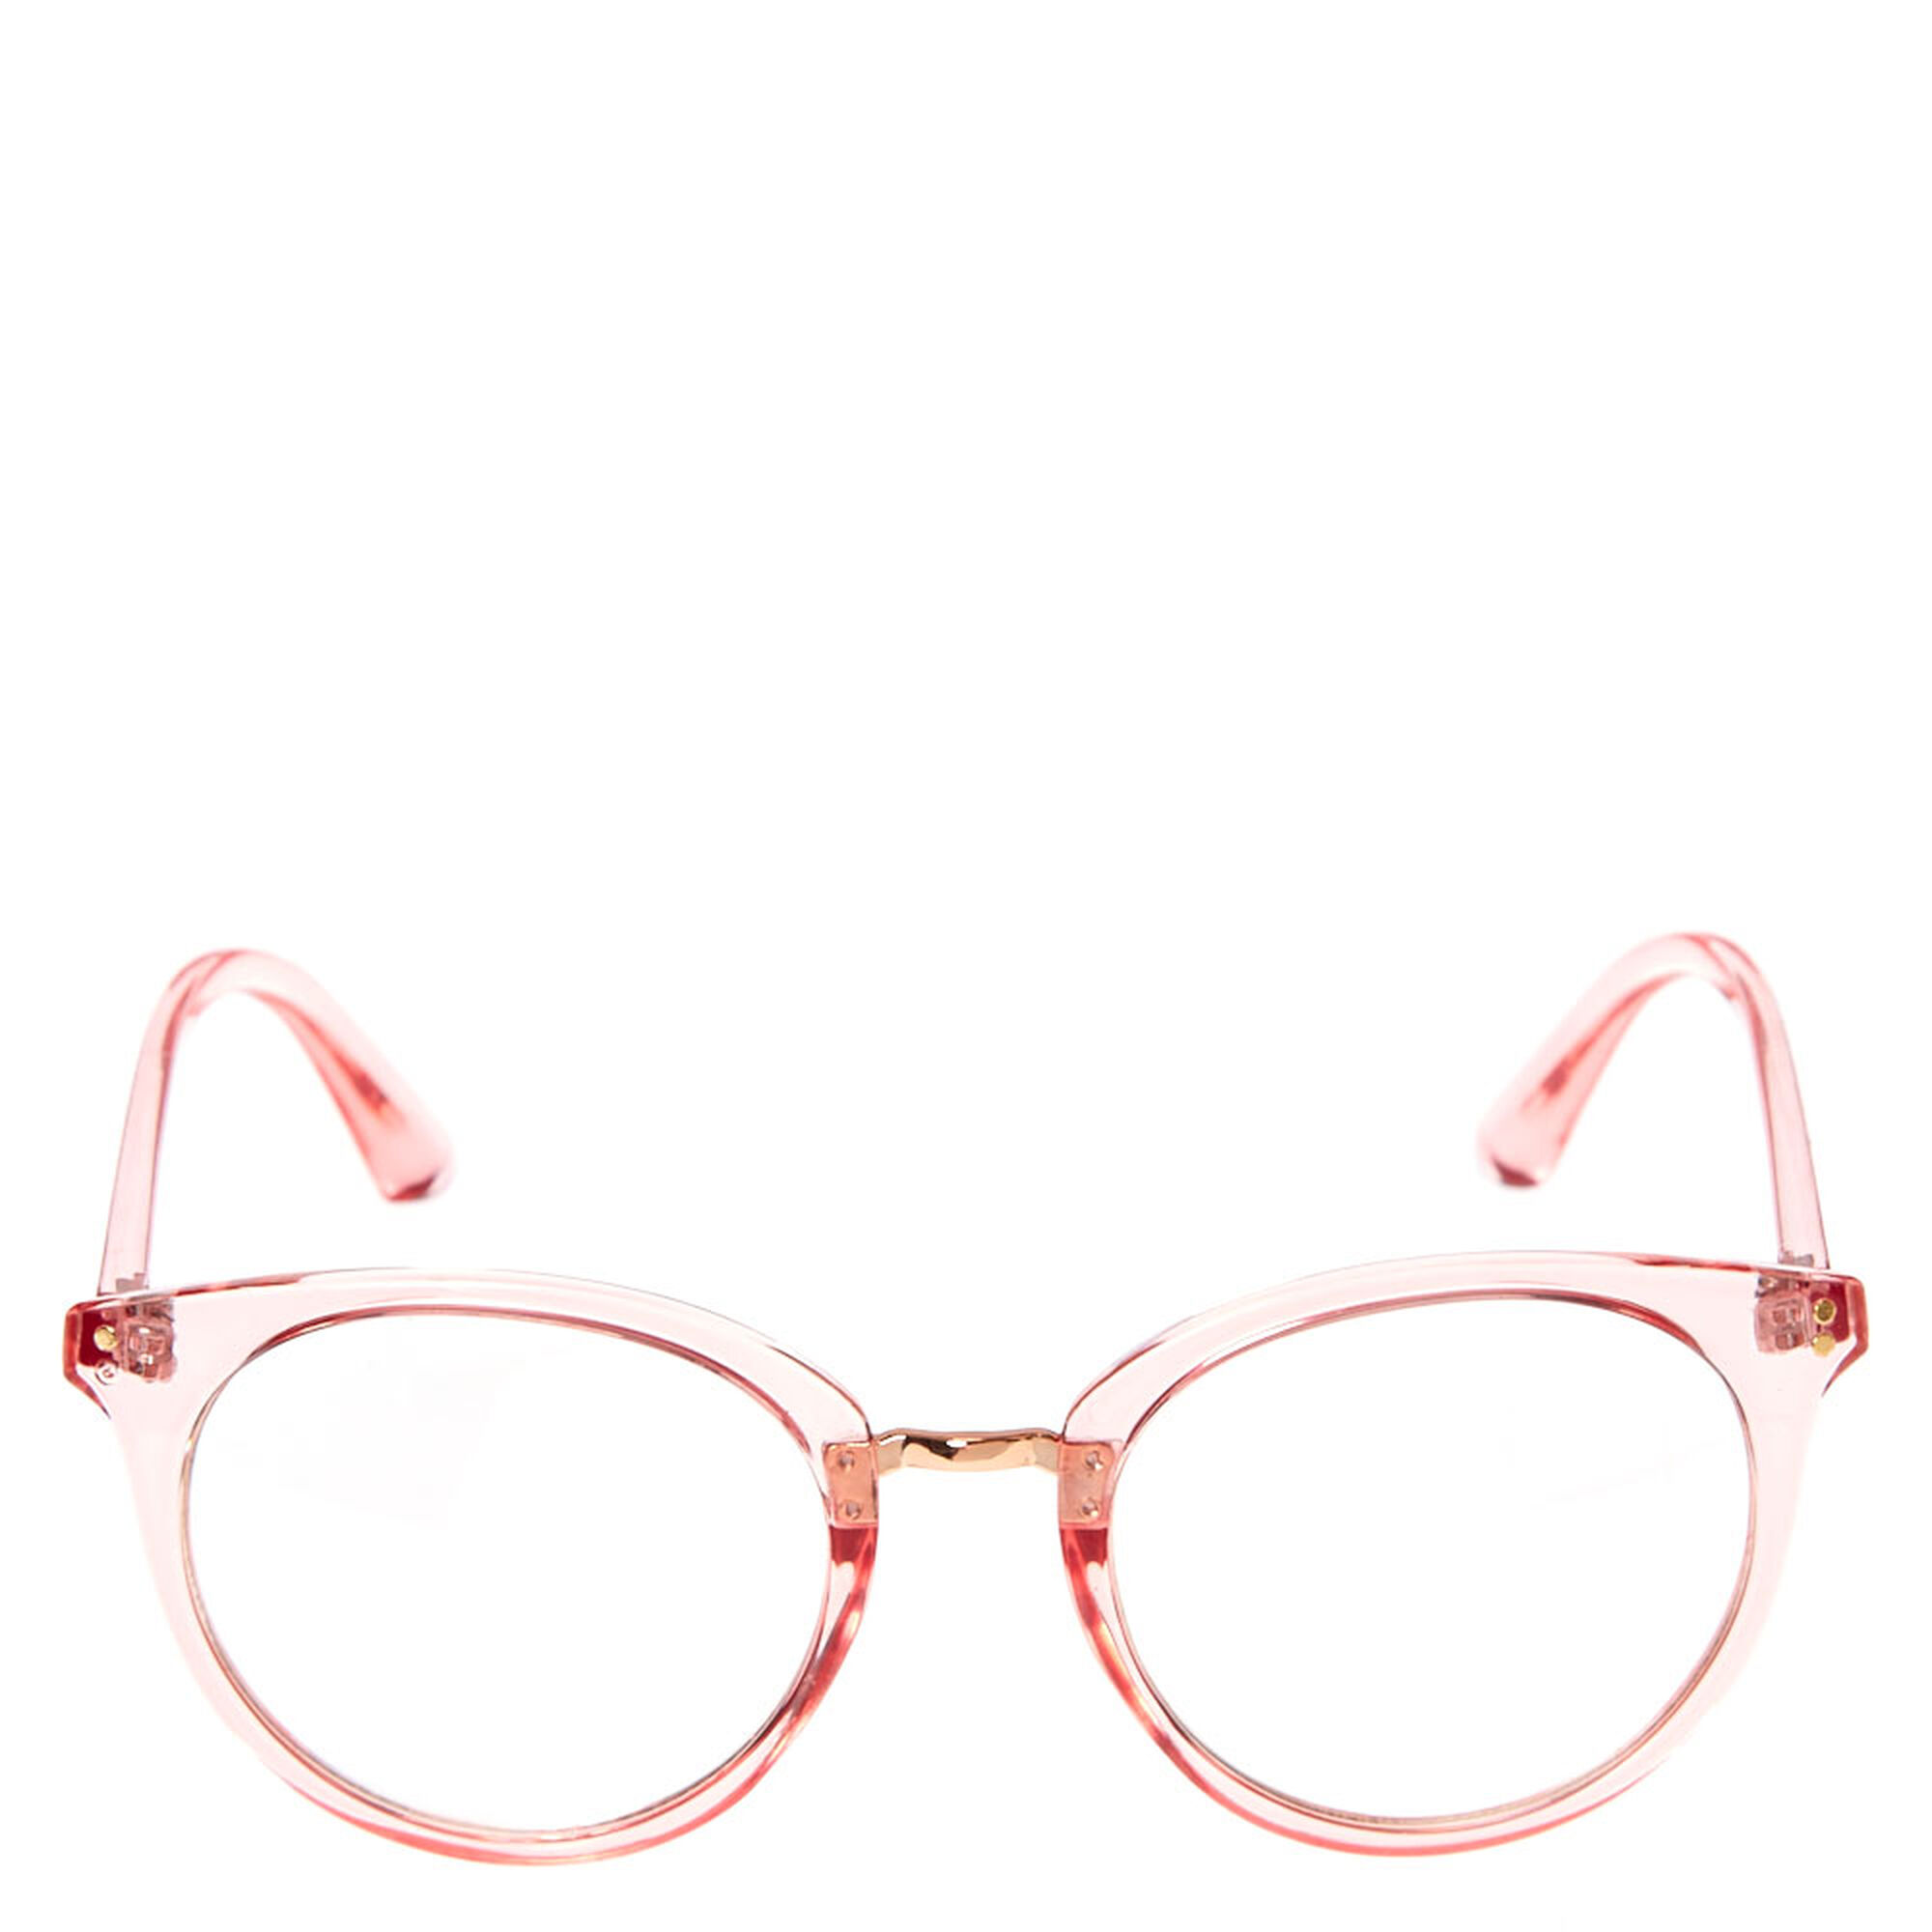 I Wear Fake Glasses is cataloged in Appearance, Authenticity, Dating Sucks, Glasses, Life, Love Hurts, Stereotypes, THE IS SARCASTIC, Uncategorized macgyver51 Consolidating this .